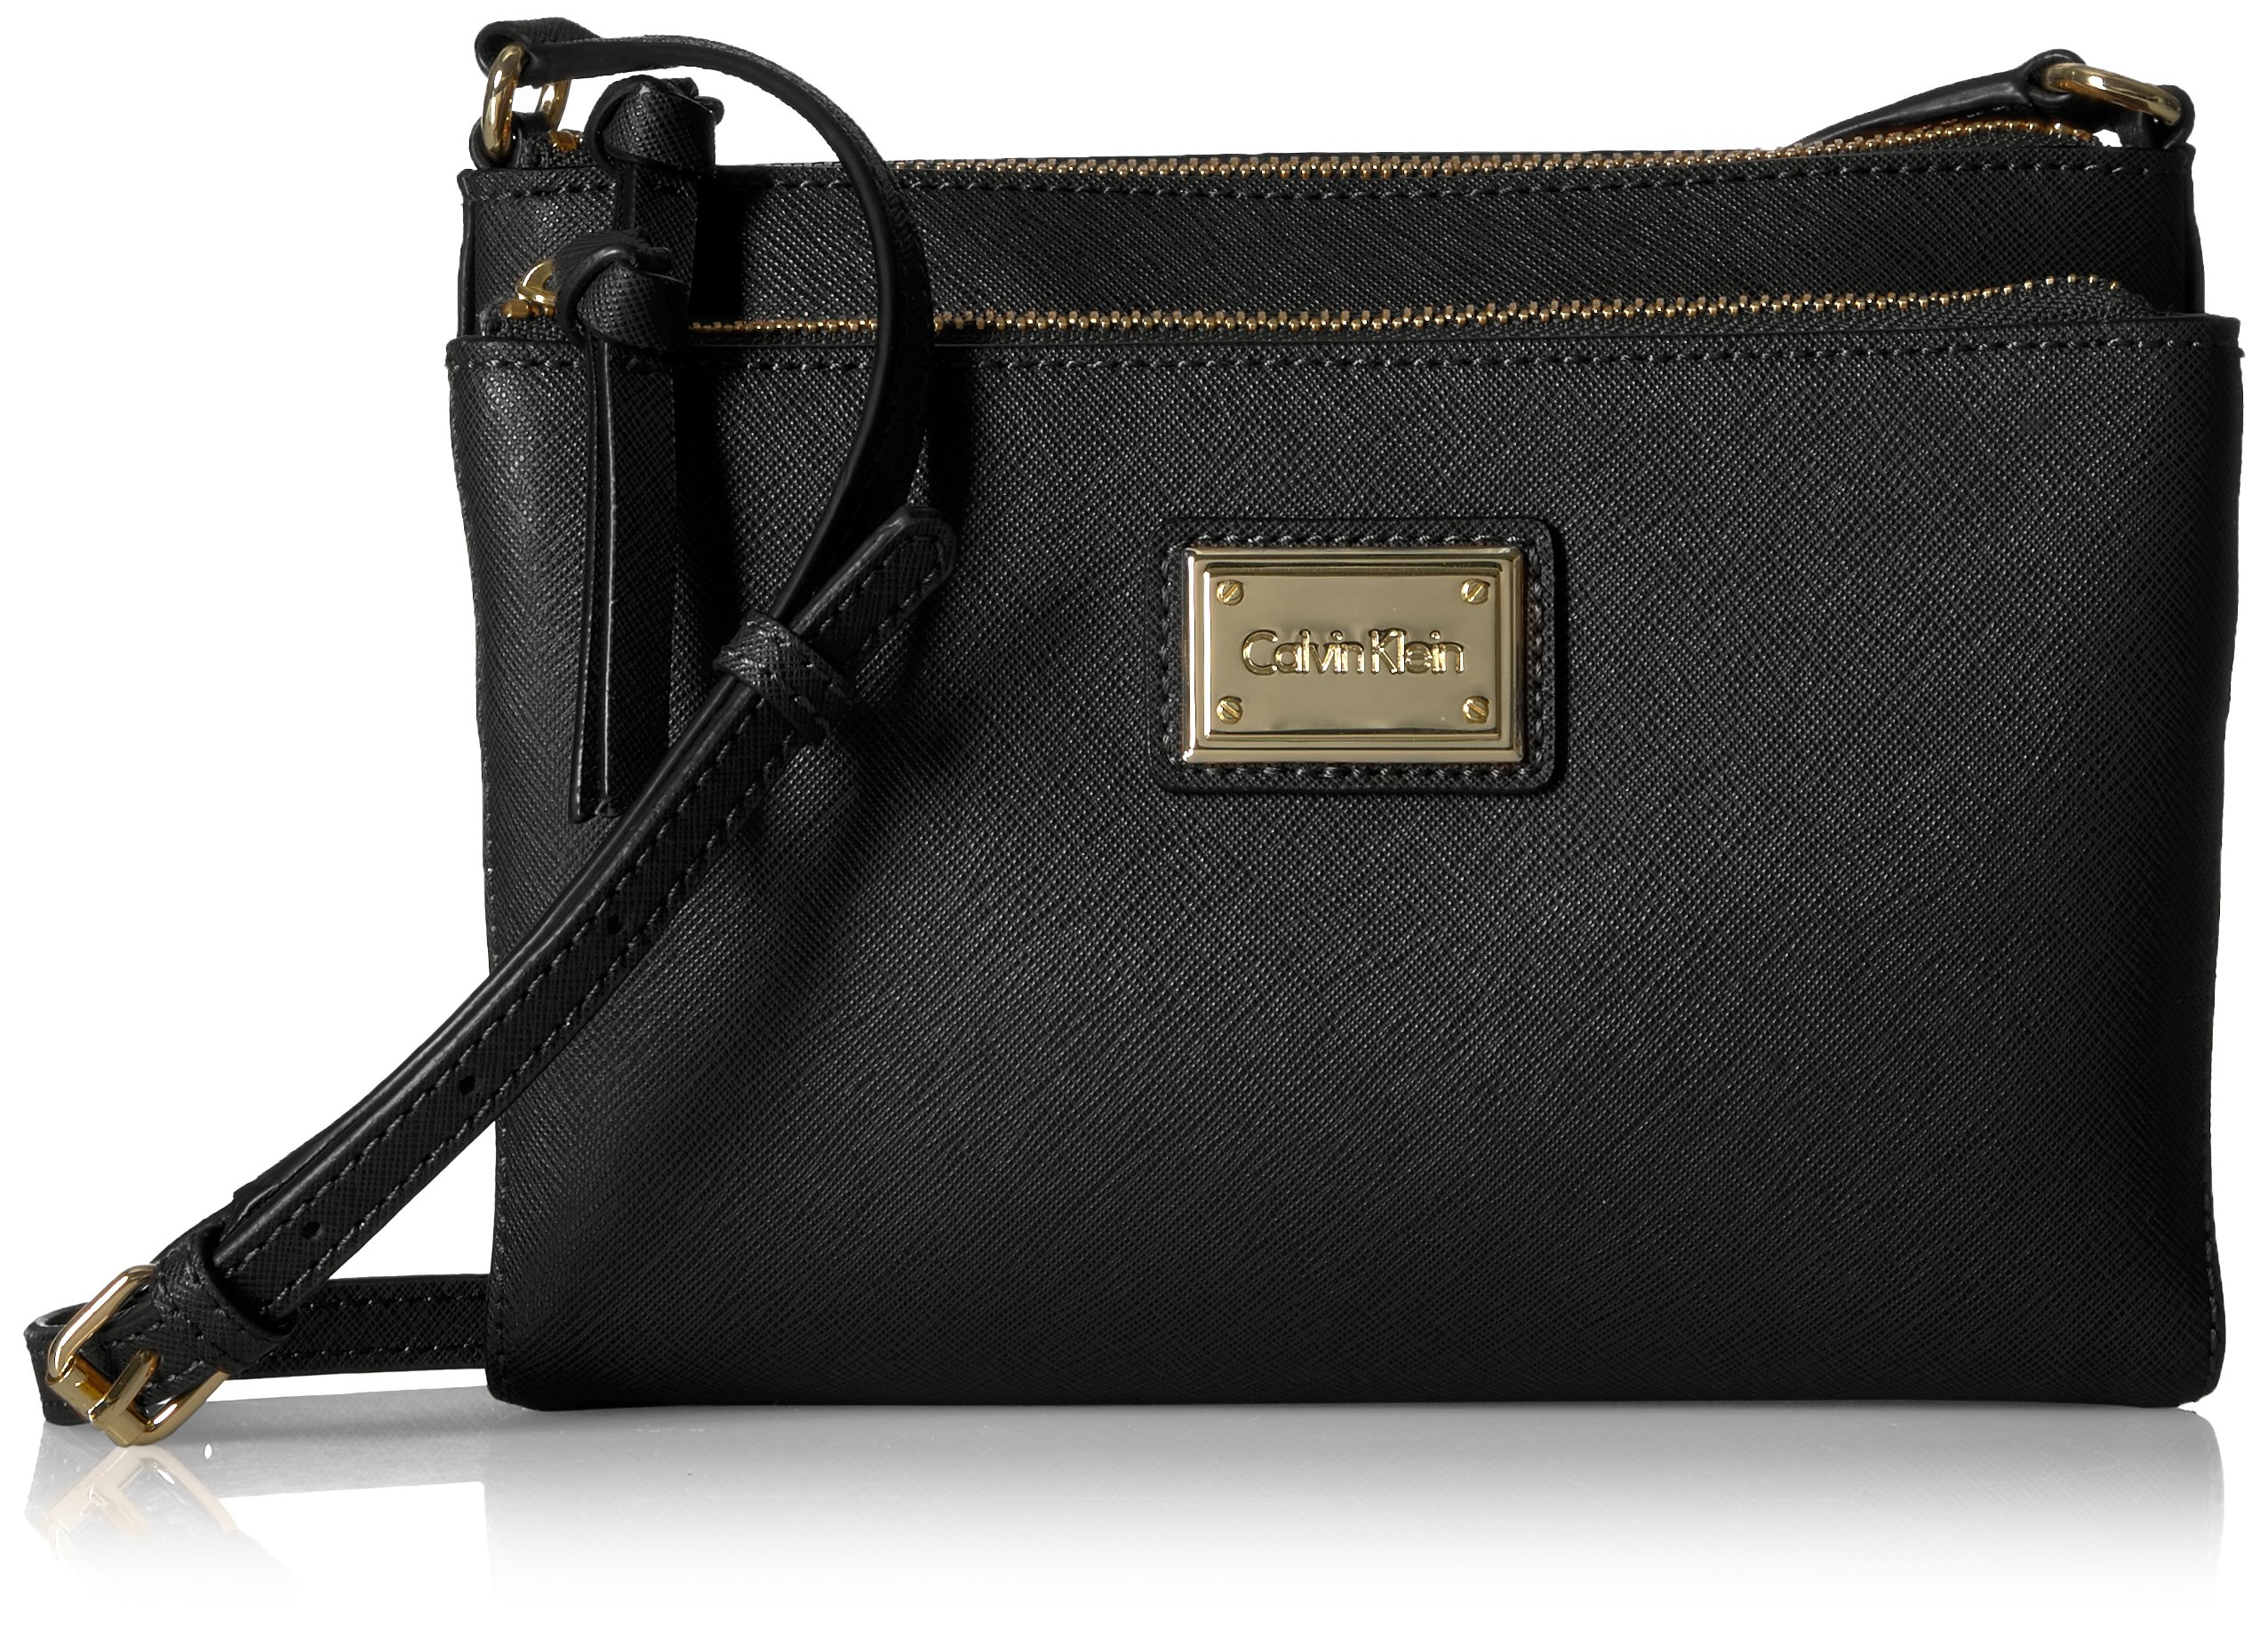 Calvin Klein Saffiano Organizational Crossbody, Black/Gold